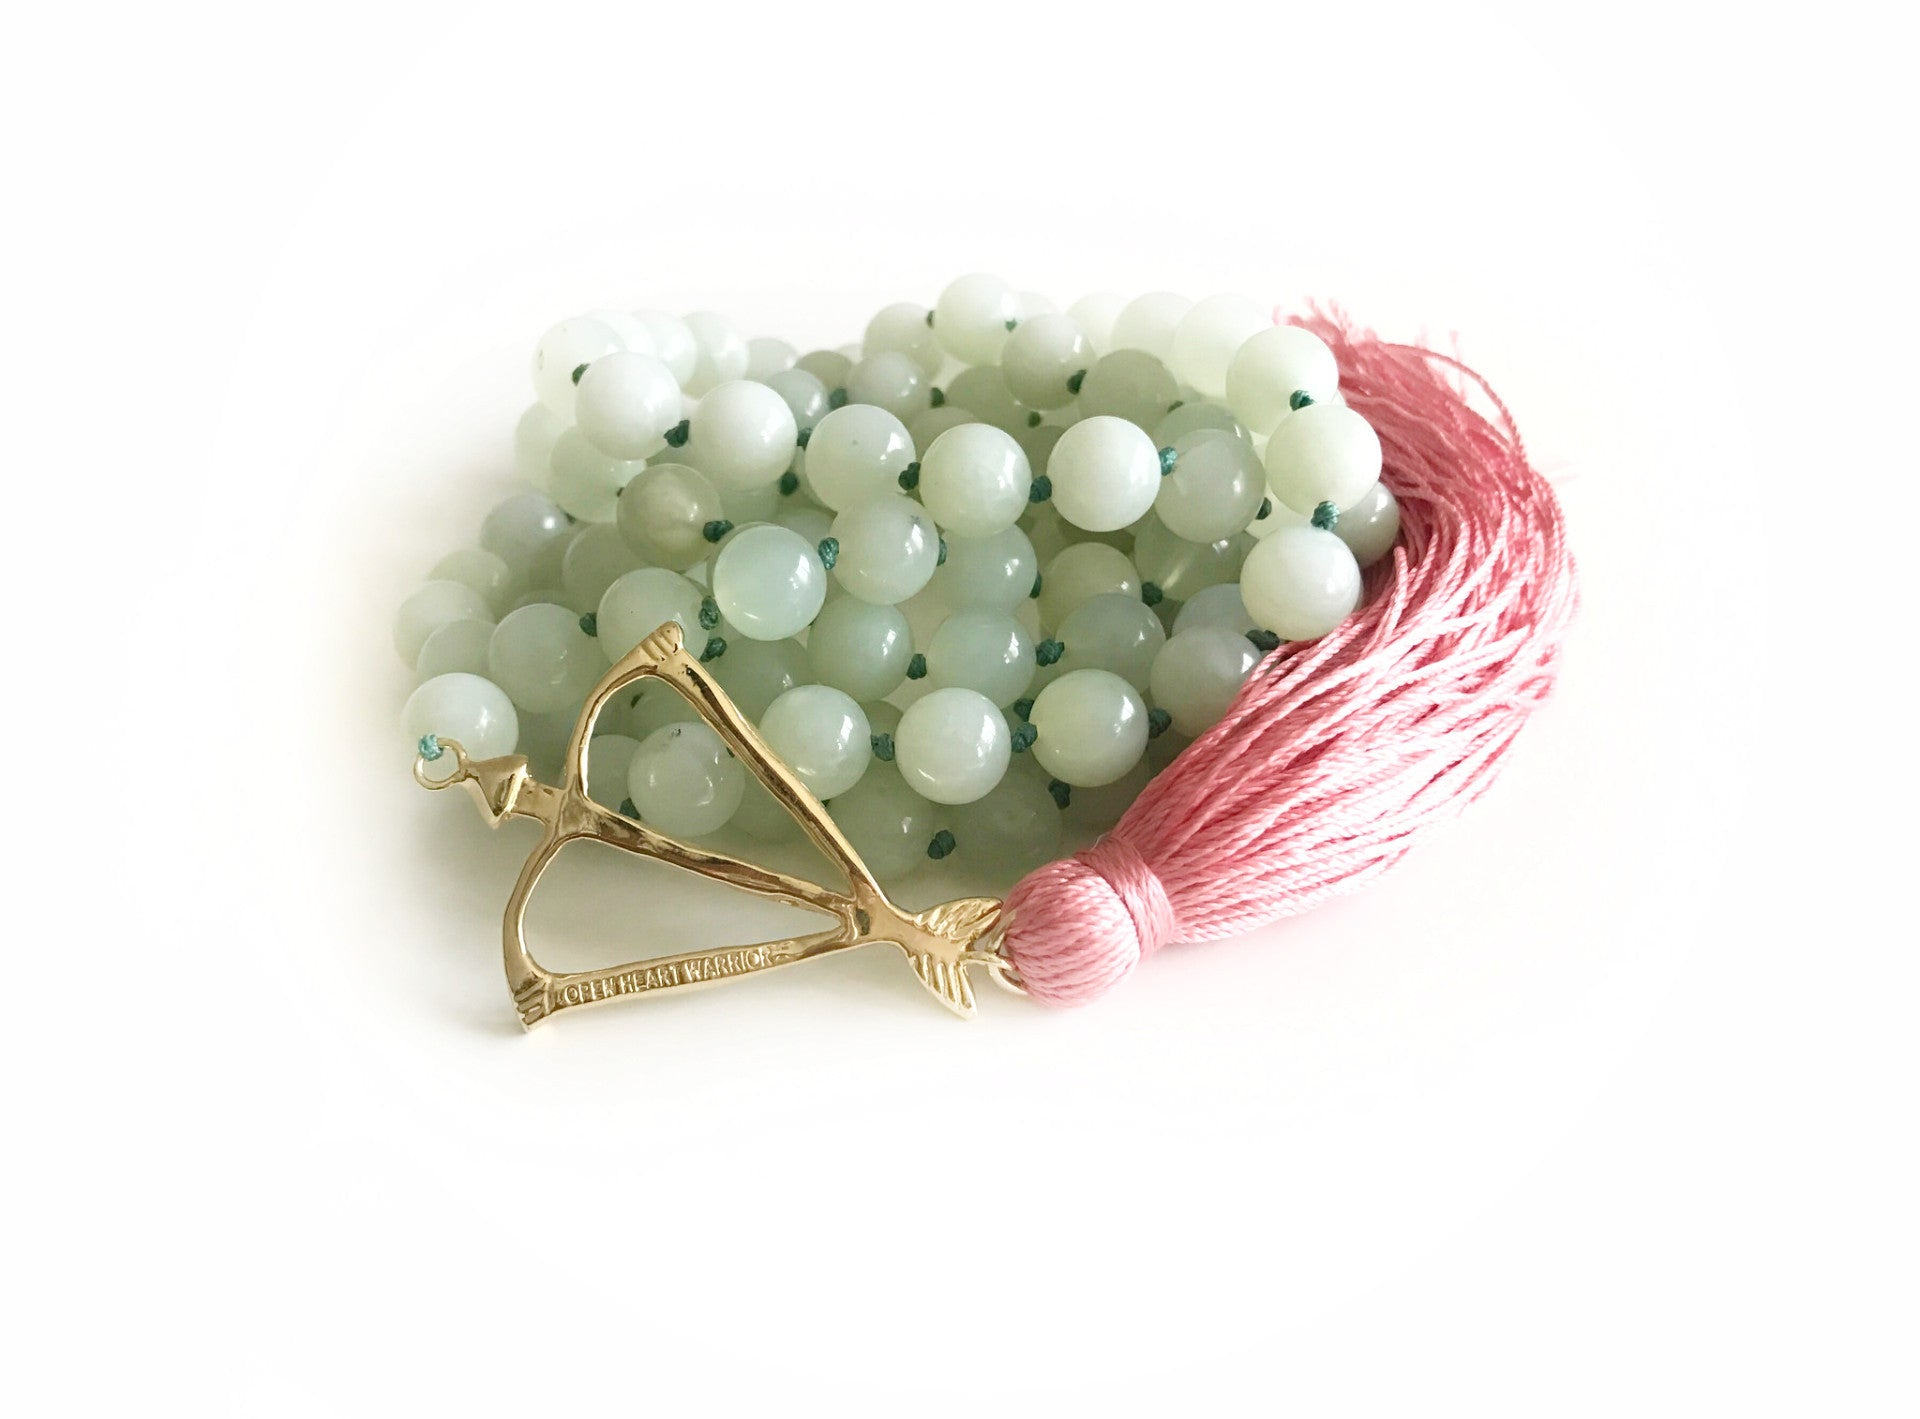 NEW! Open Heart Warrior New Jade Faceted Serpentine Healing & Awakening 108 Mala